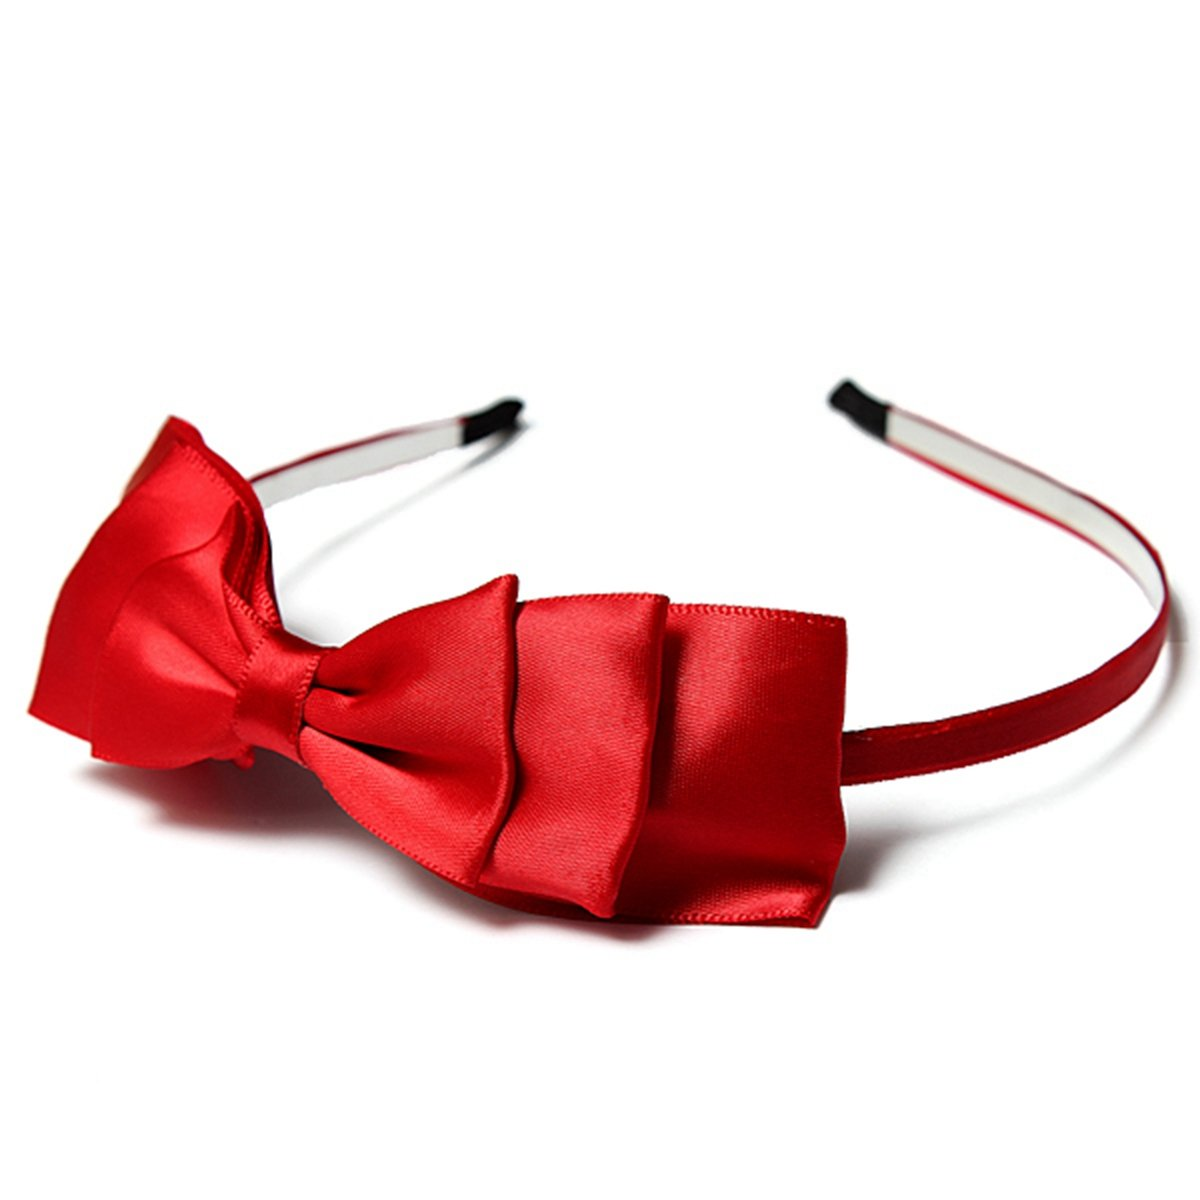 Bow Hairband Soft Elastic Bowknot Headband Hair Accessories For Children Adults Red Fine Quality